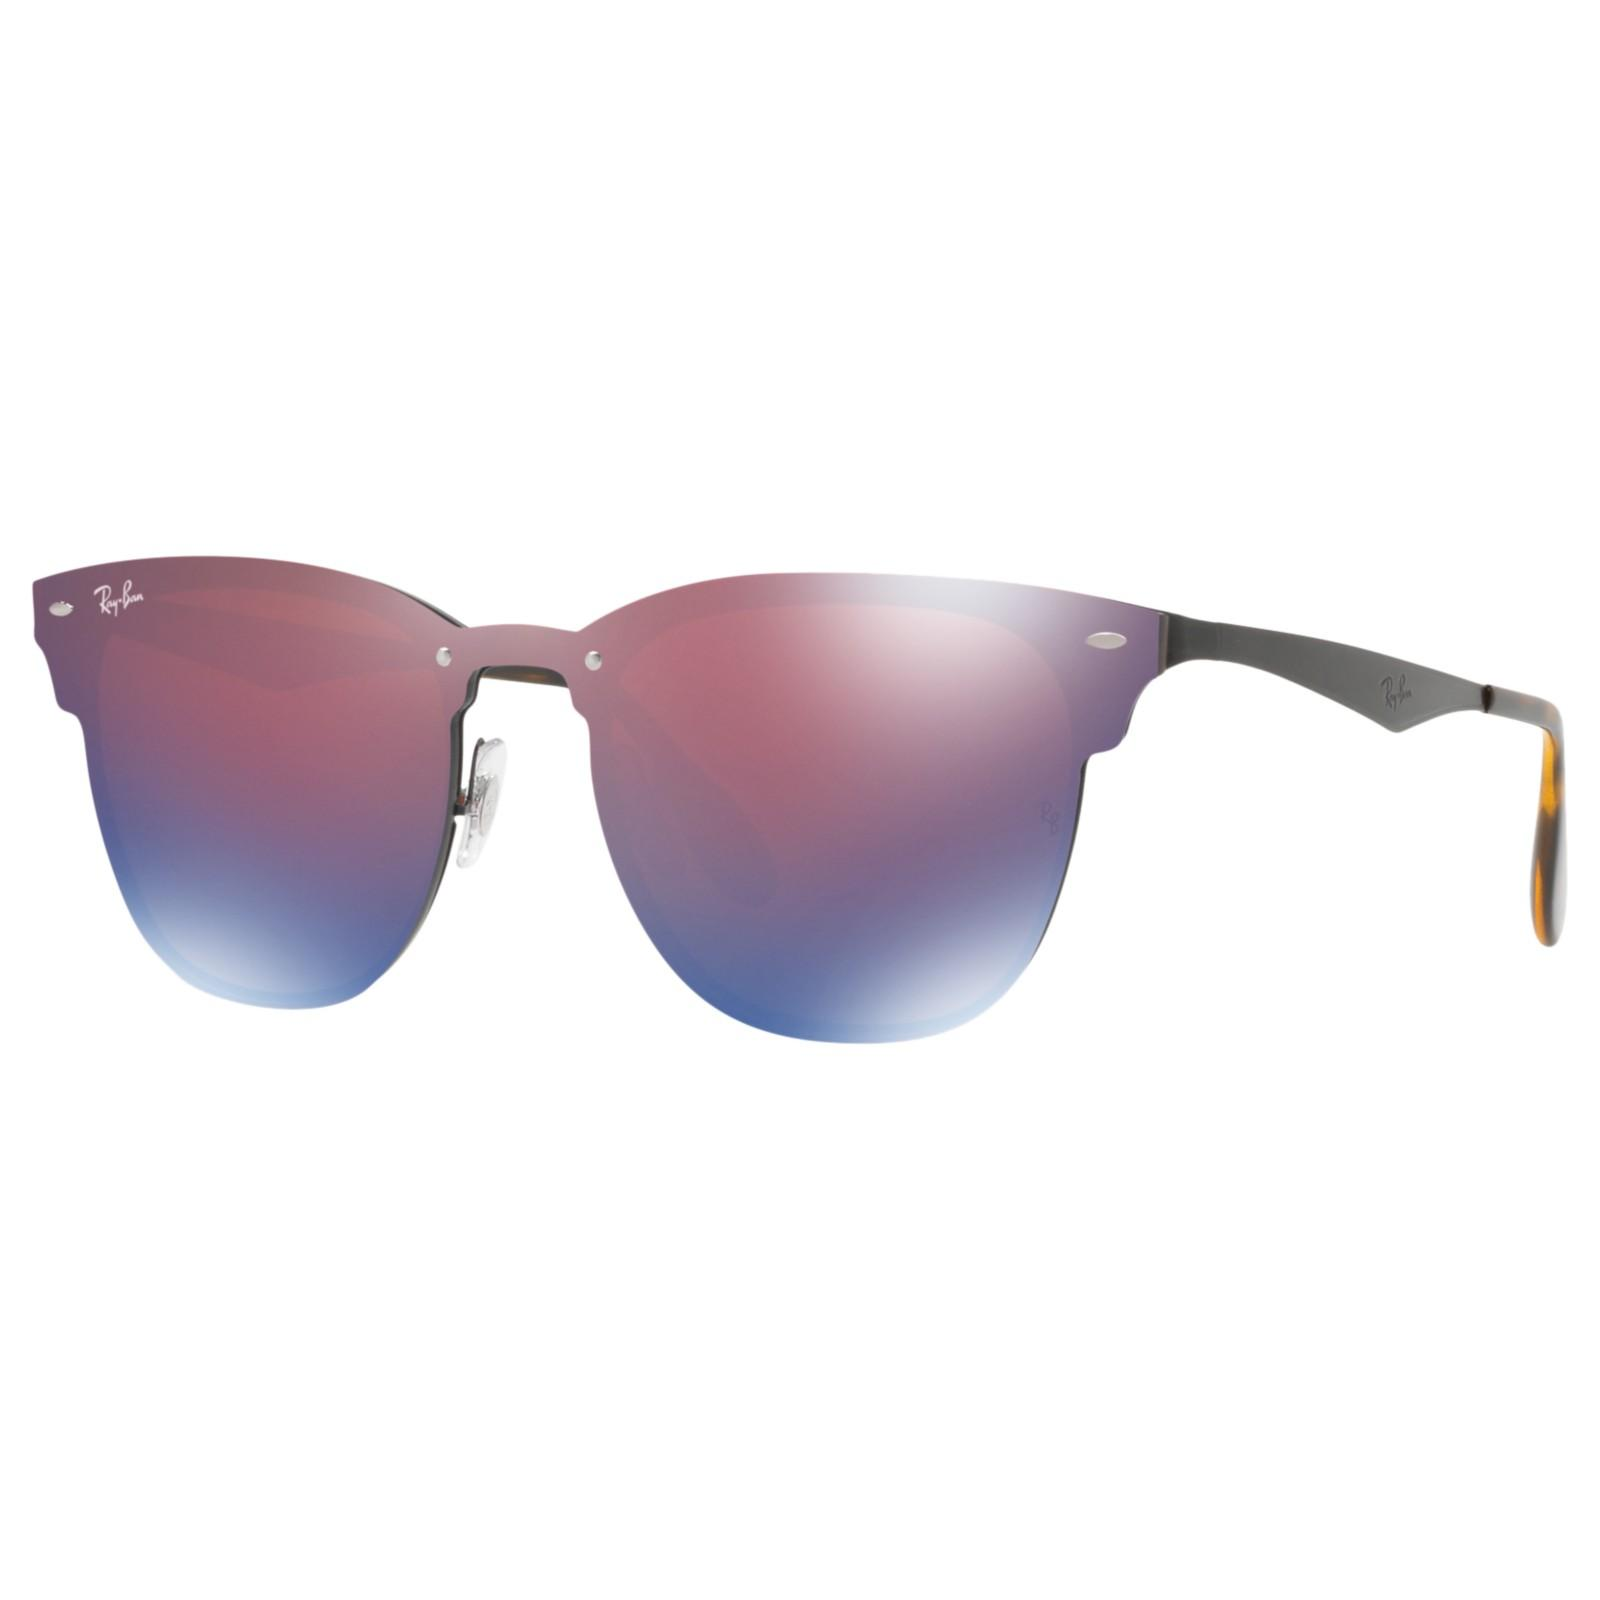 53a933bbb7 Ray-Ban Rb3576n Blaze Clubmaster Square Sunglasses in Purple - Lyst